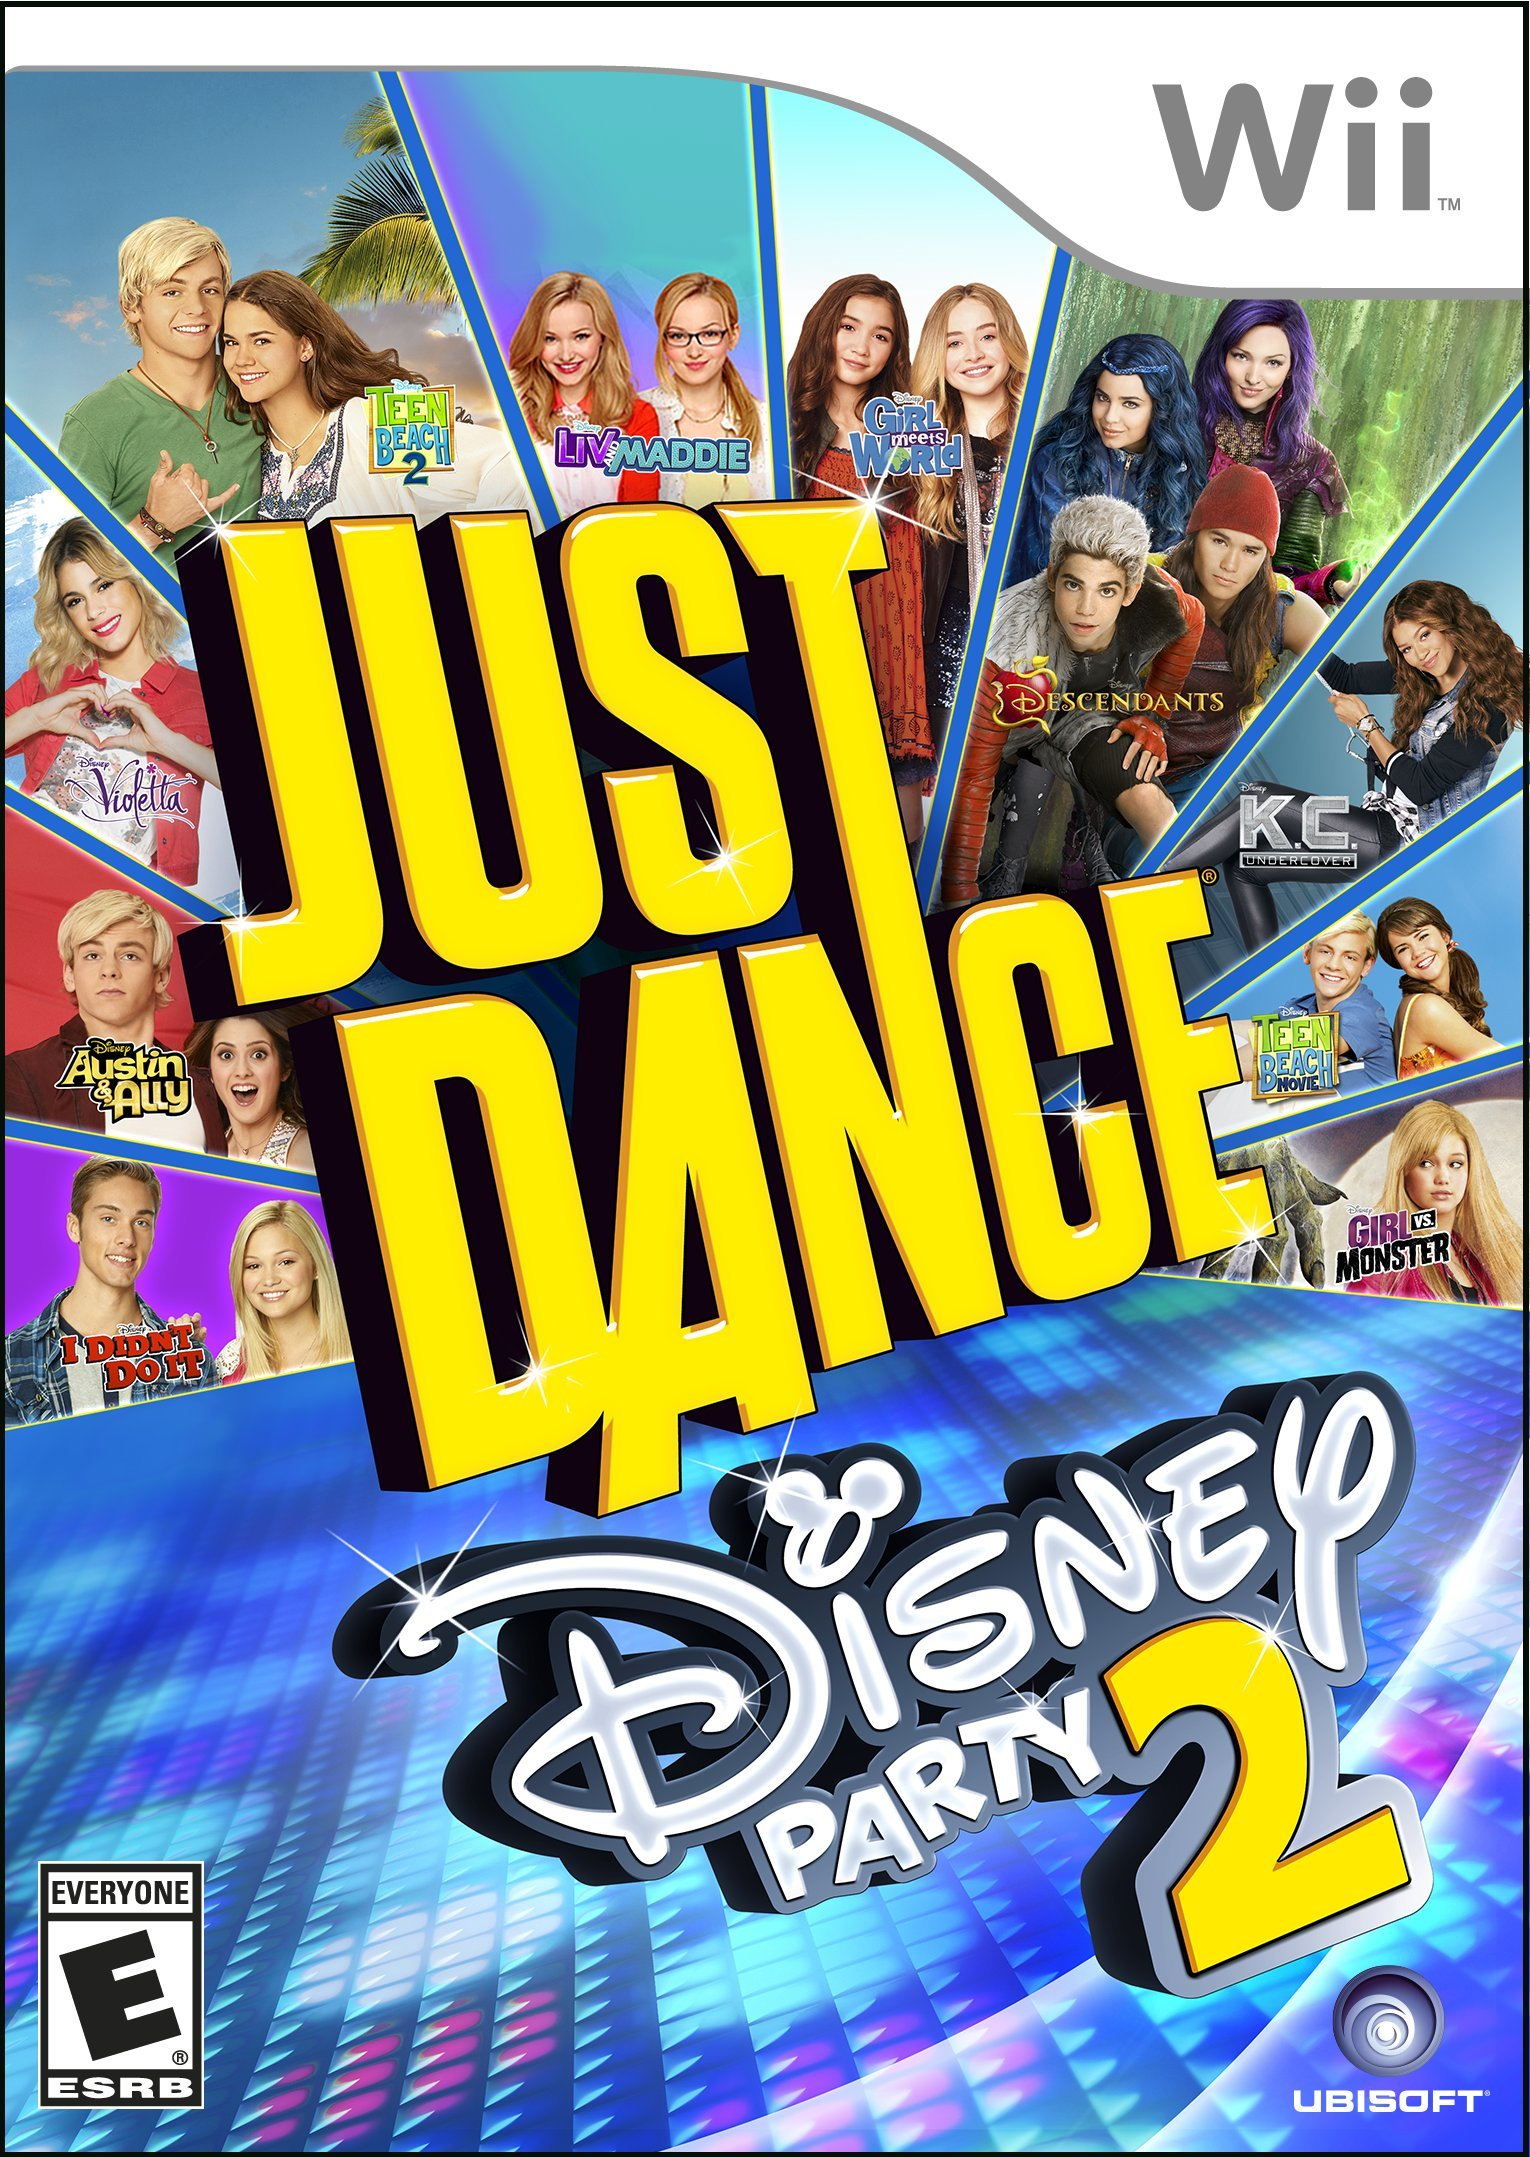 just dance disney party 2 release date xbox 360 wii wii. Black Bedroom Furniture Sets. Home Design Ideas